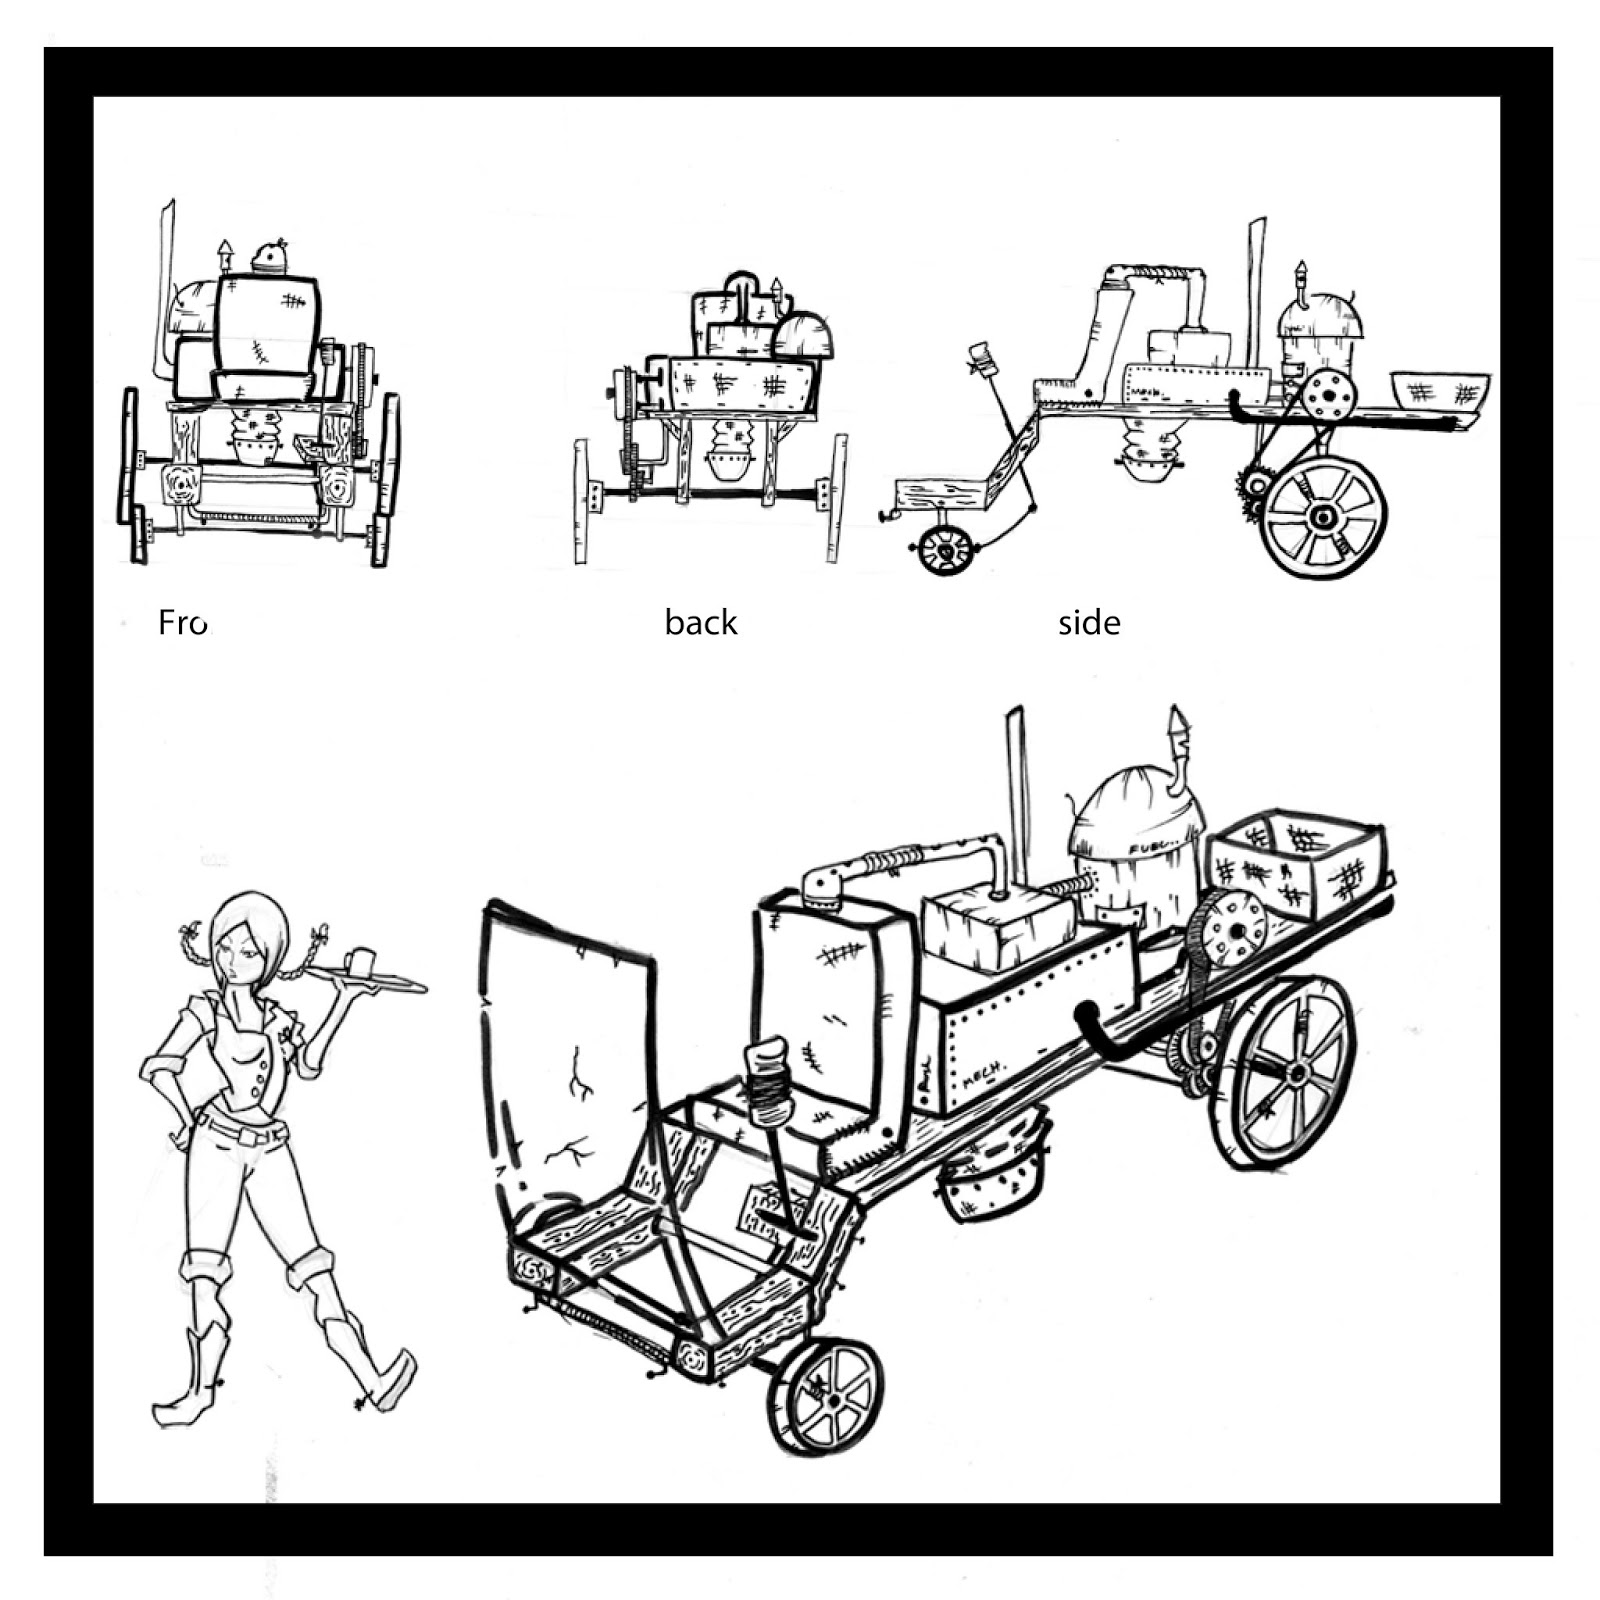 Shawn Ramcharan Art Concept Art For A Vehicle In The